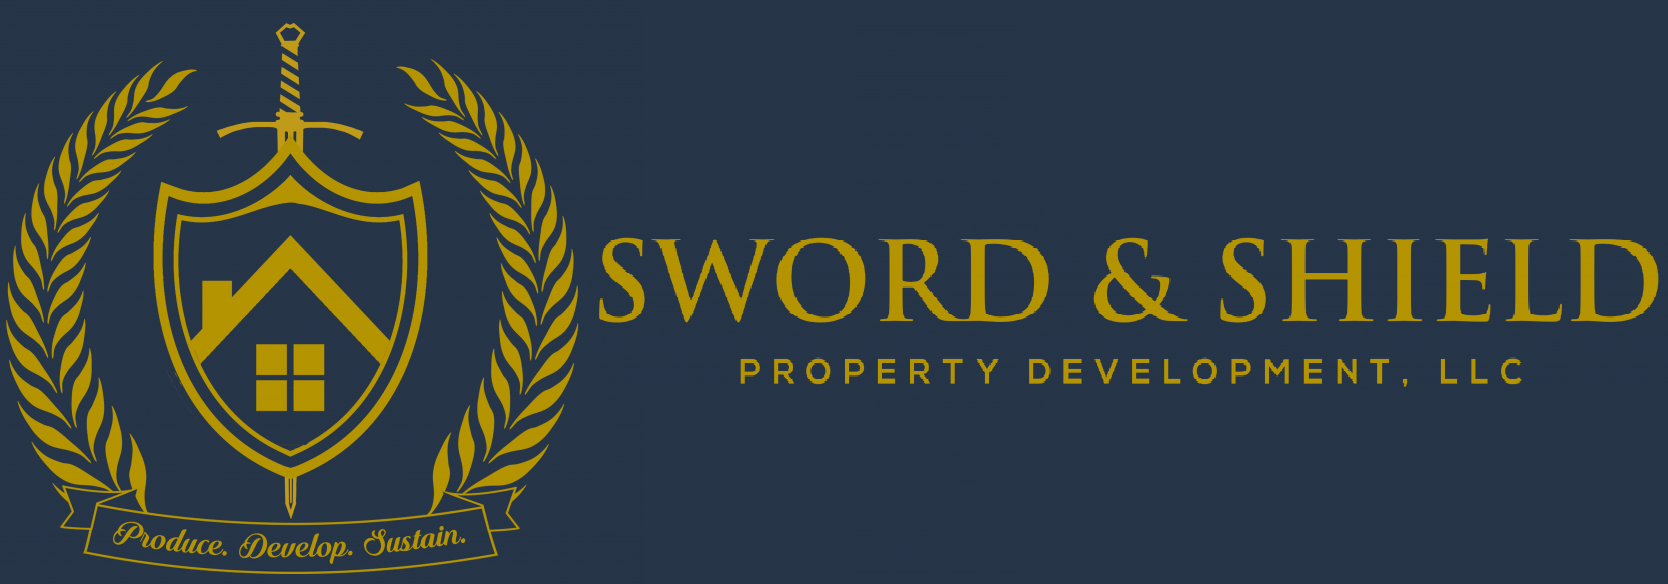 Sword & Shield Property Development, LLC